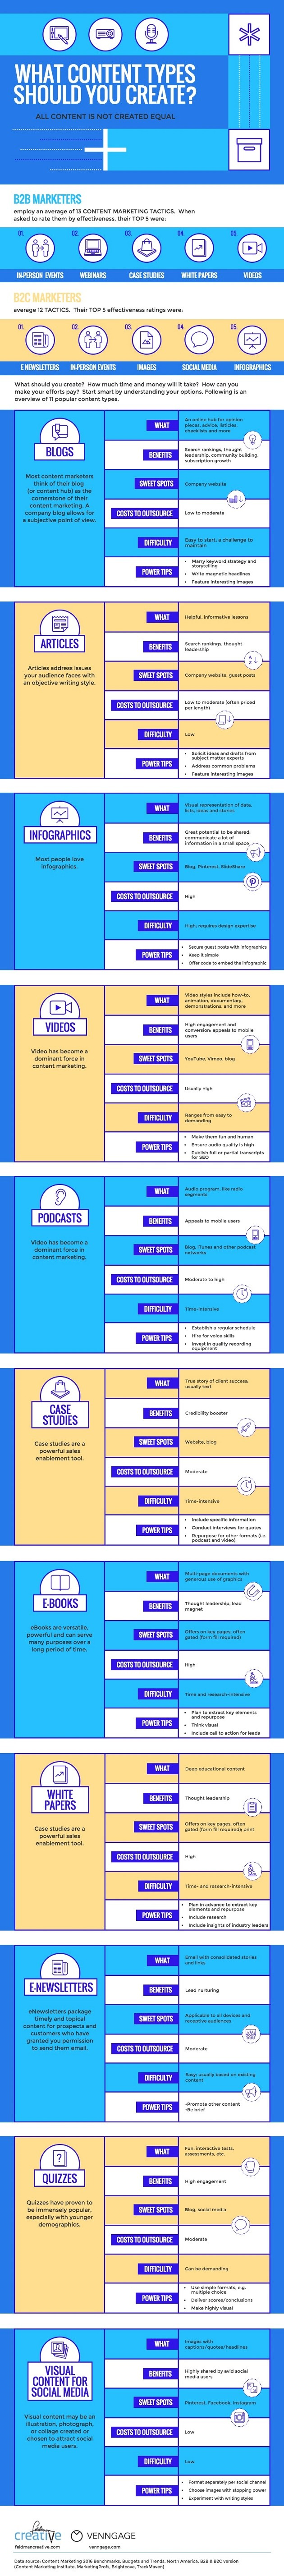 content-types-infographic-preview (1)